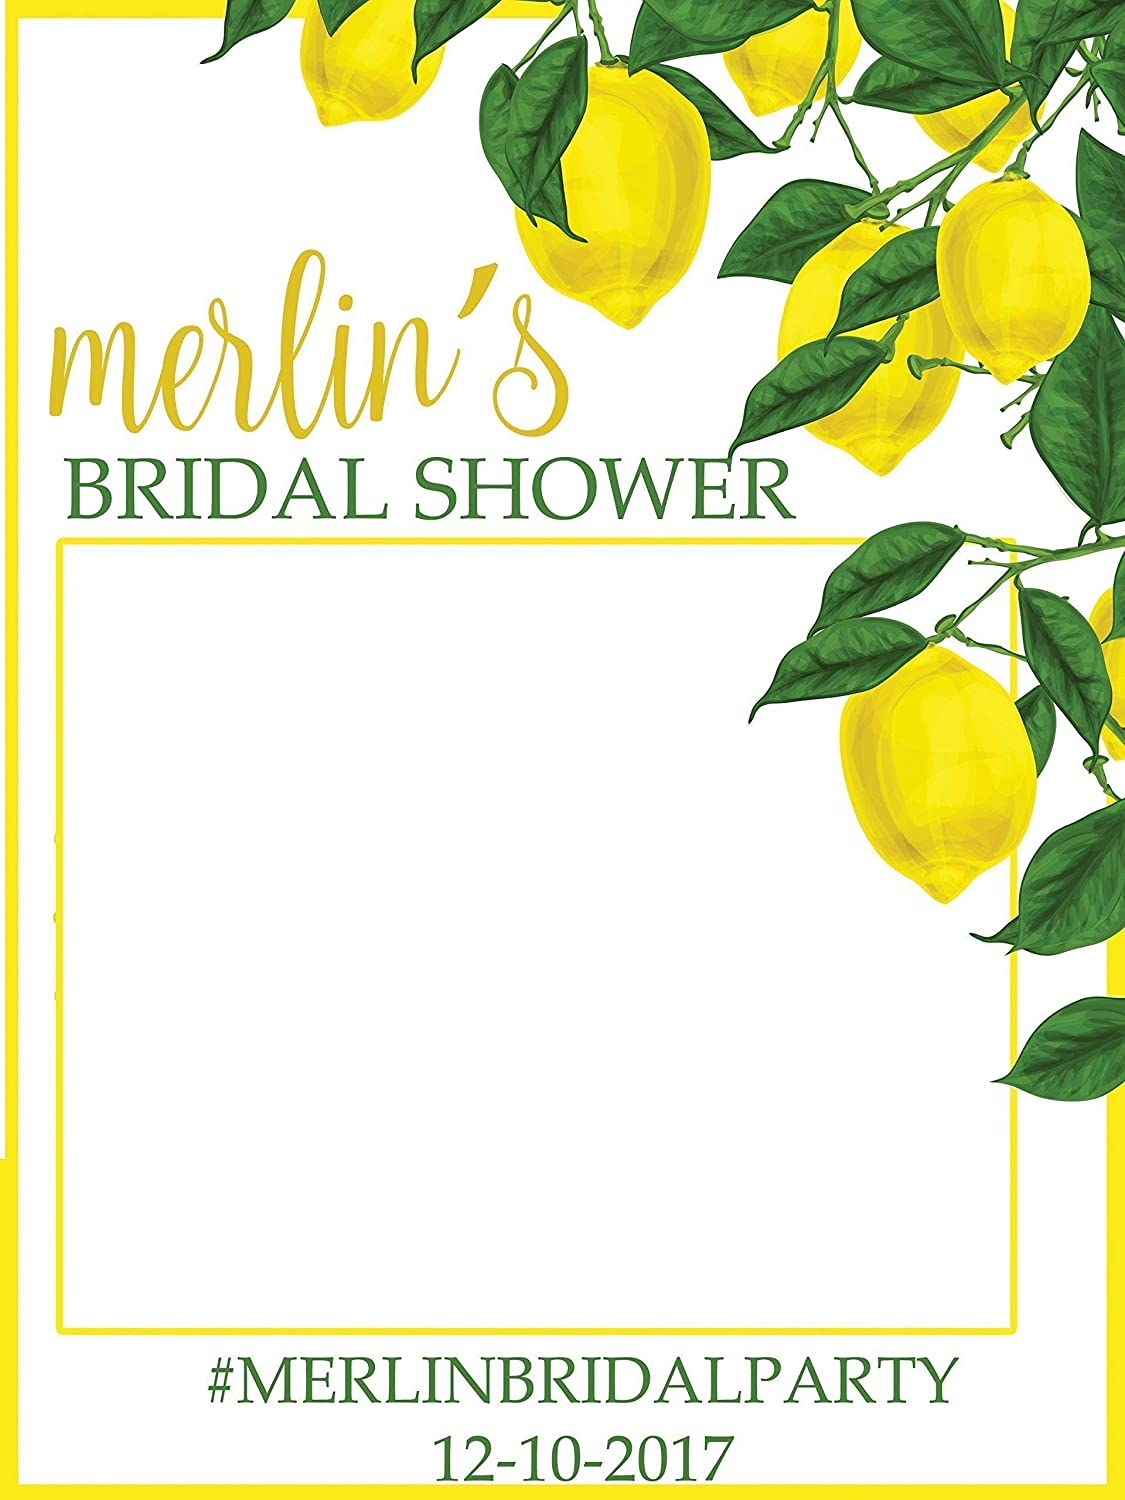 Custom Lemon Bridal Shower Photo Booth Frame - Sizes 36x24, 48x36